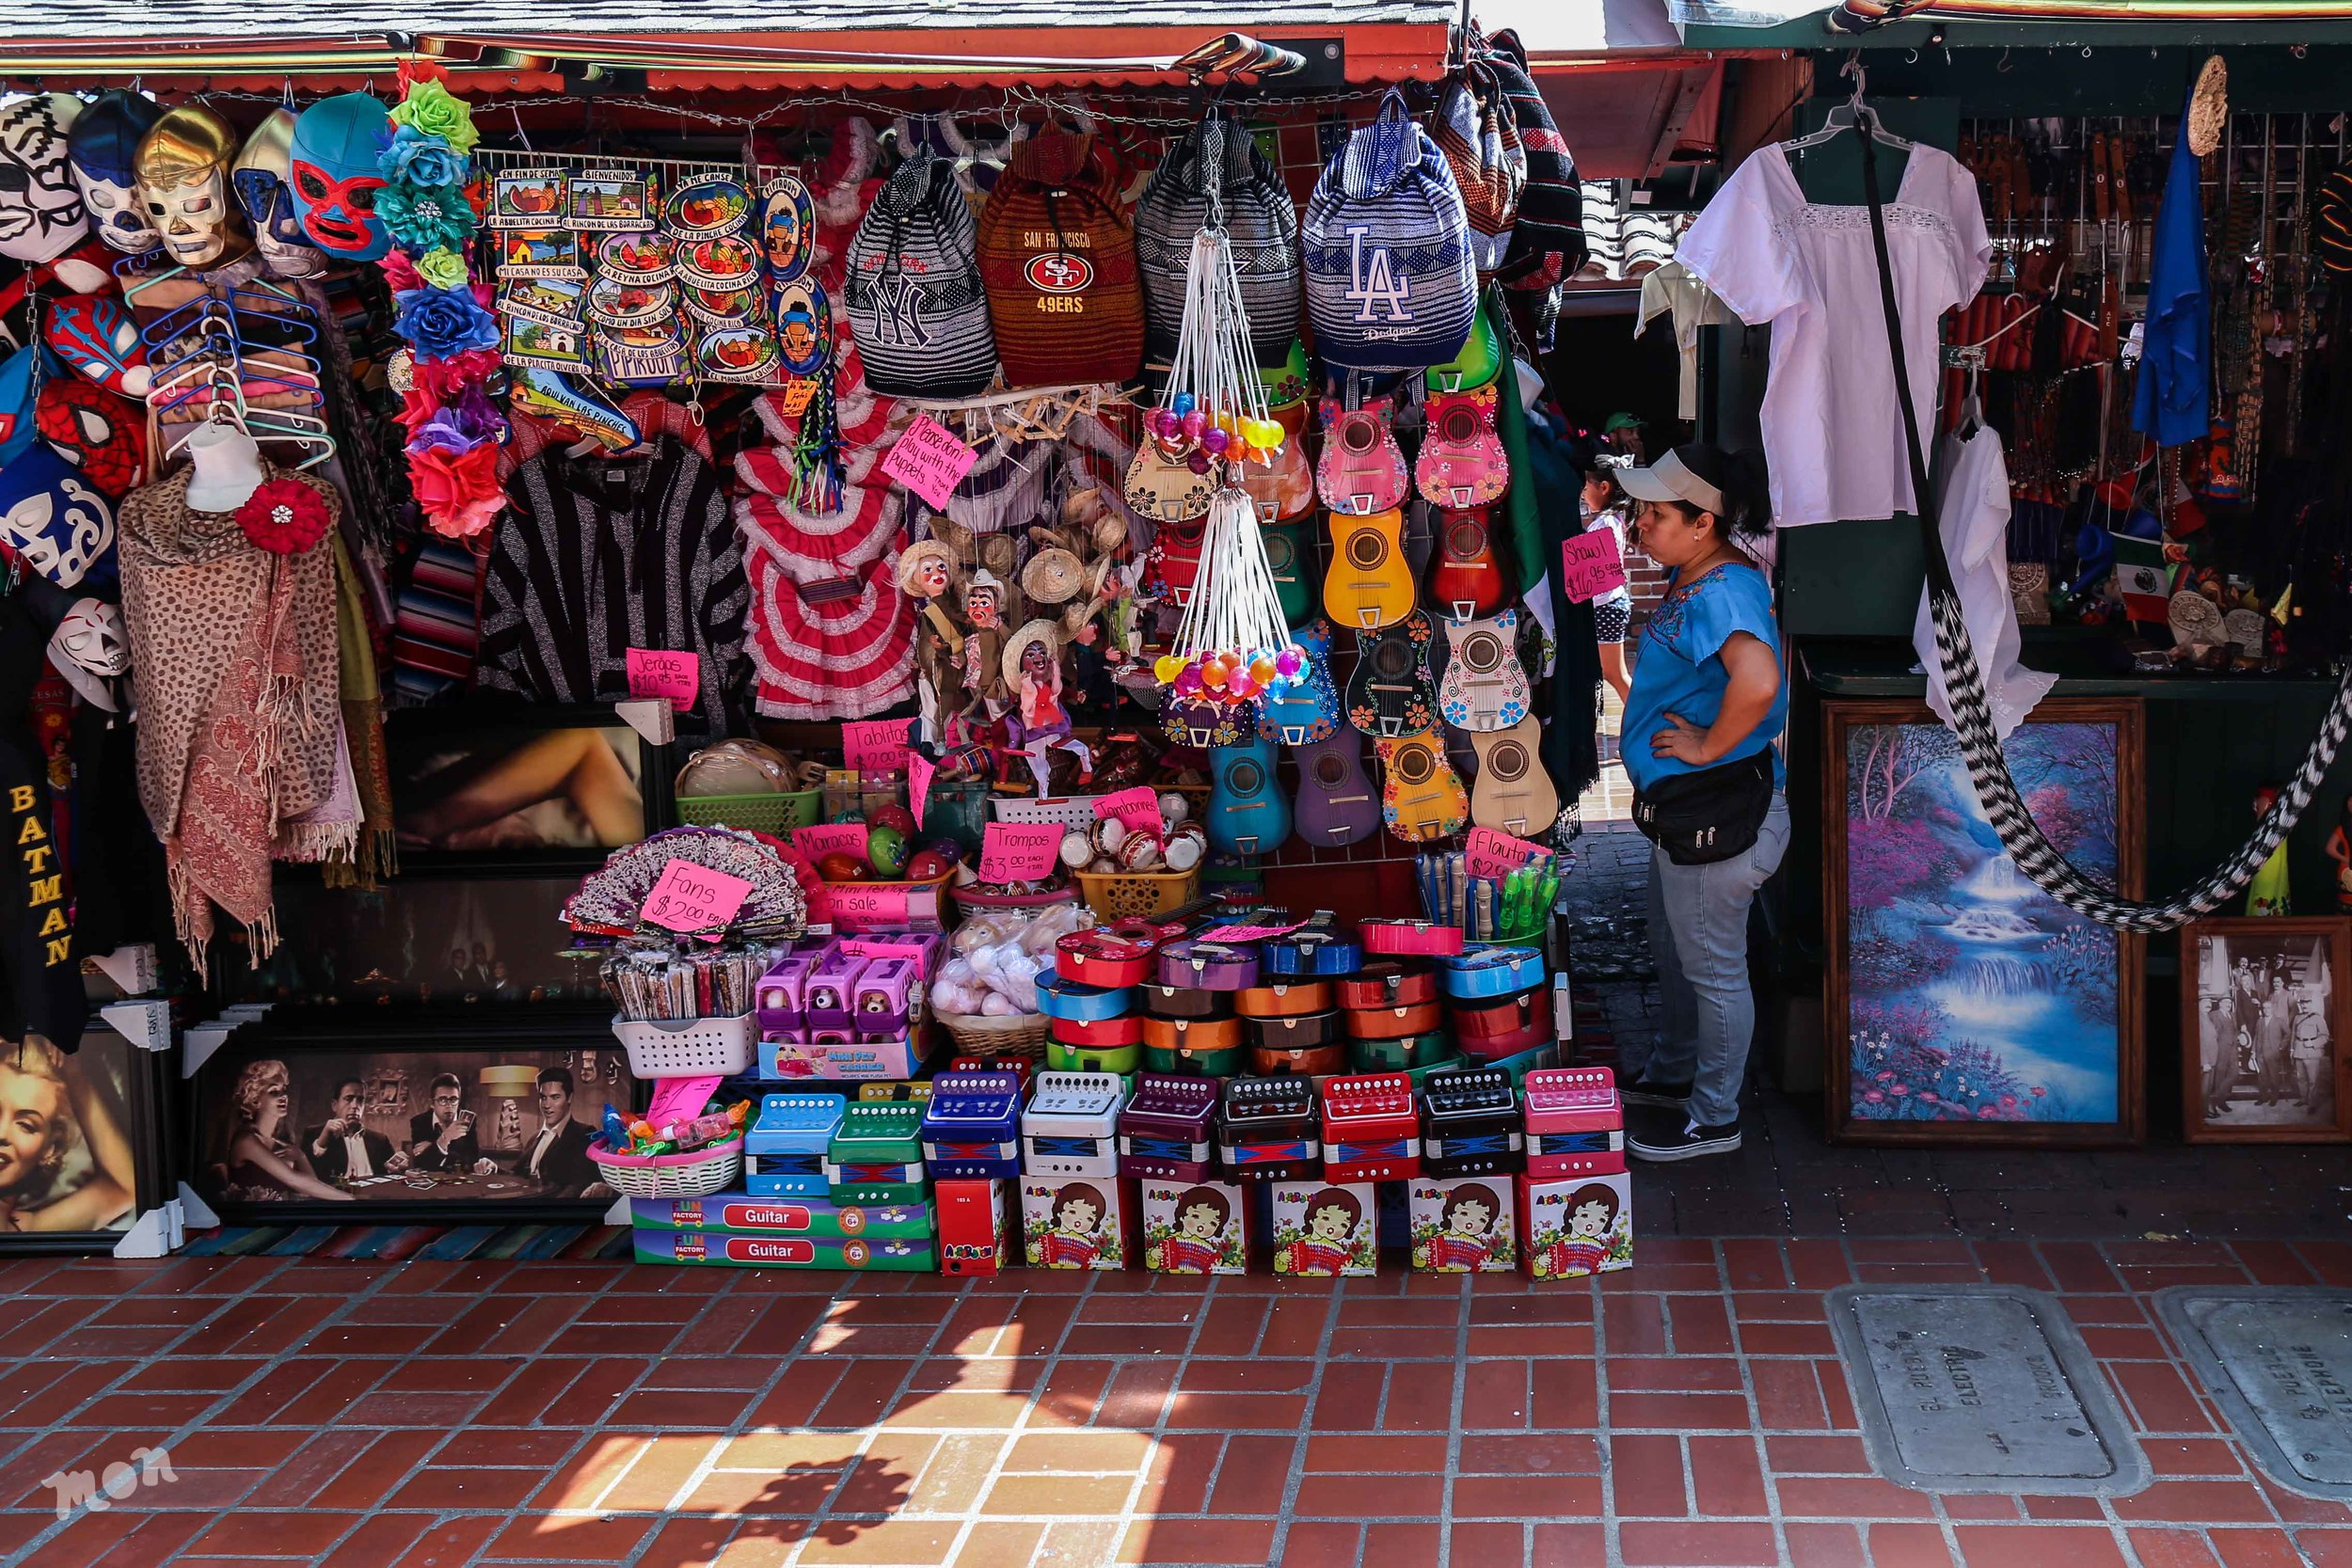 Vendor on Olvera St